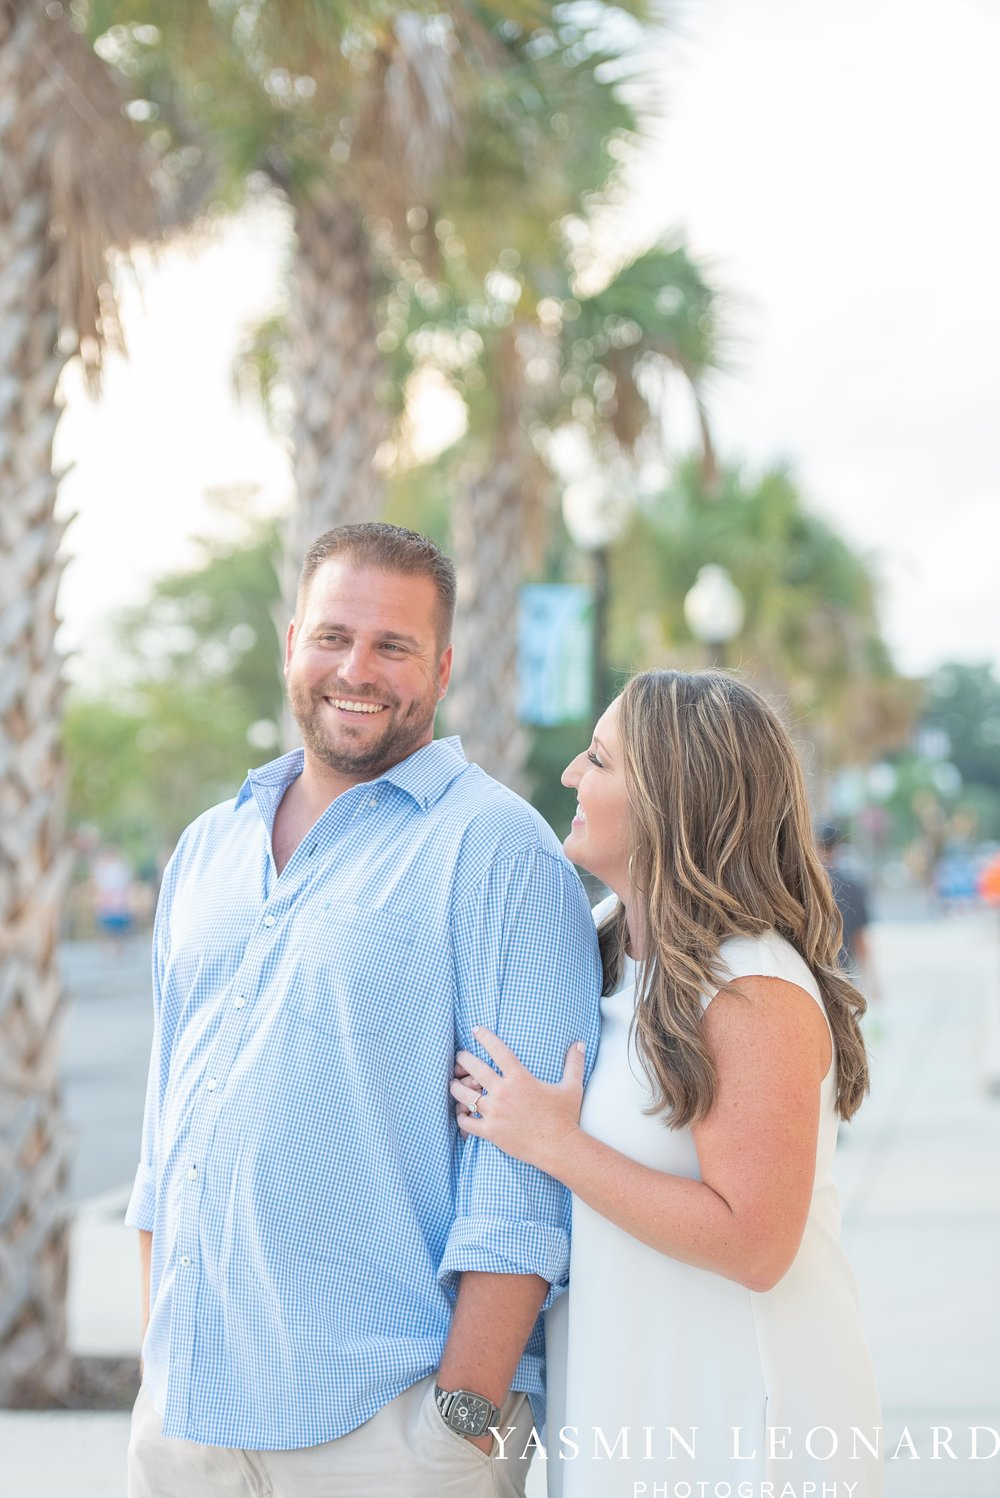 Wrightsville Beach Engagement Session - Wilmington Engagement Session - Downtown Wilmington Engagement Session - NC Weddings - Wilmington NC - Yasmin Leonard Photography-7.jpg